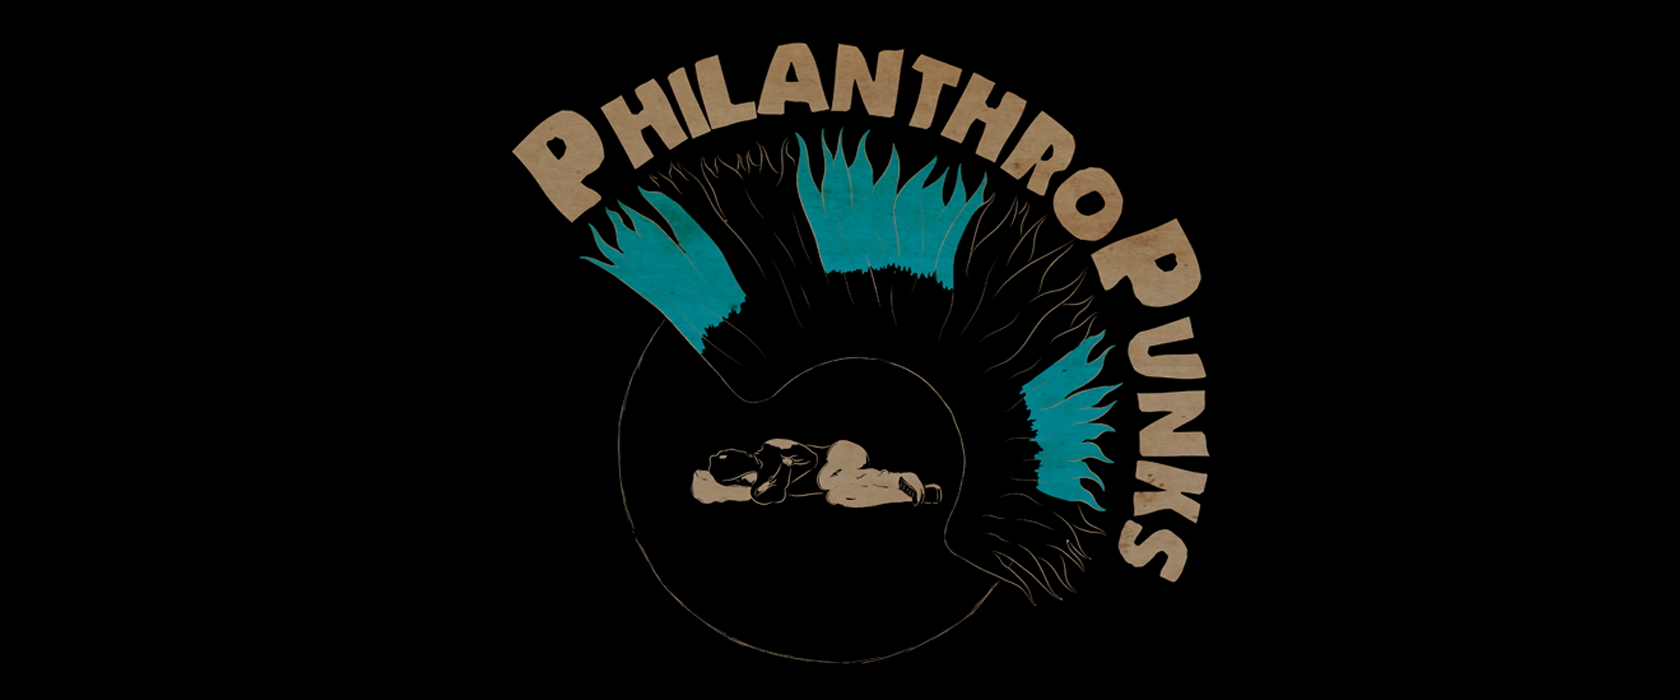 Philanthropunks are fundraising to give others shelter and support